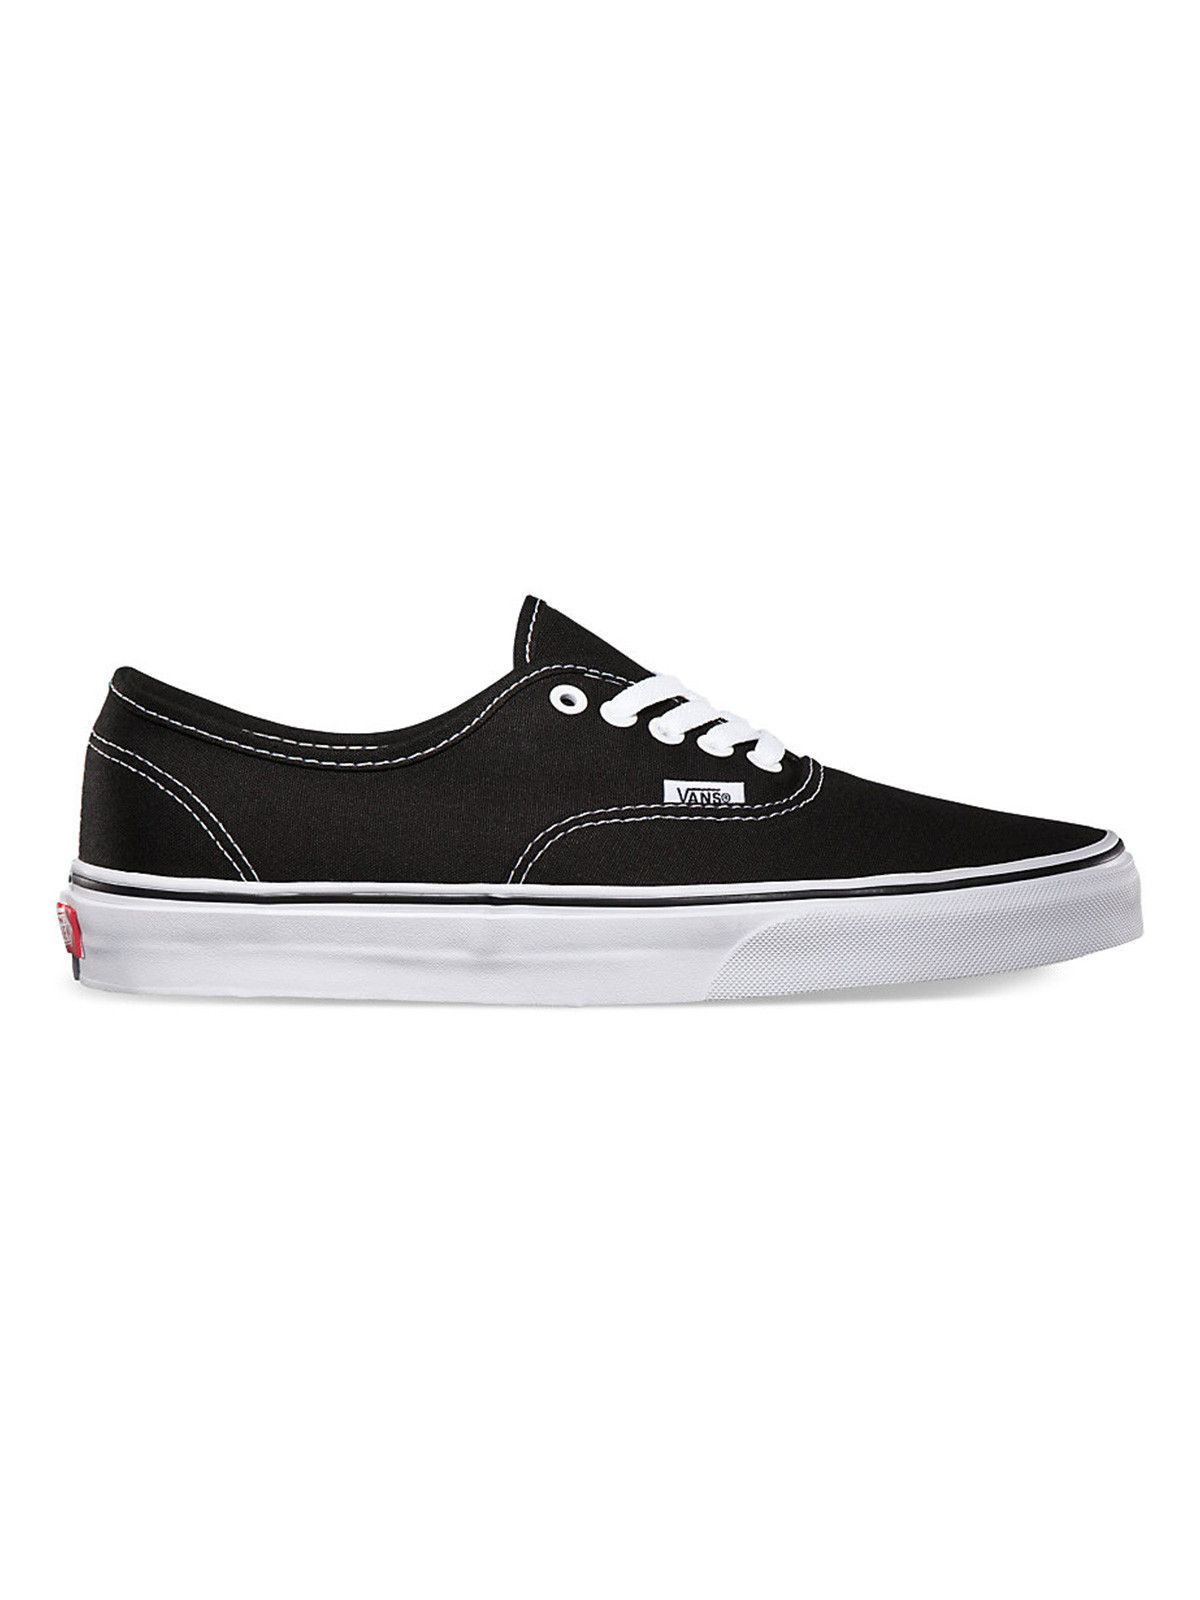 Vans Authentic - Black  2e7bc8db9f91